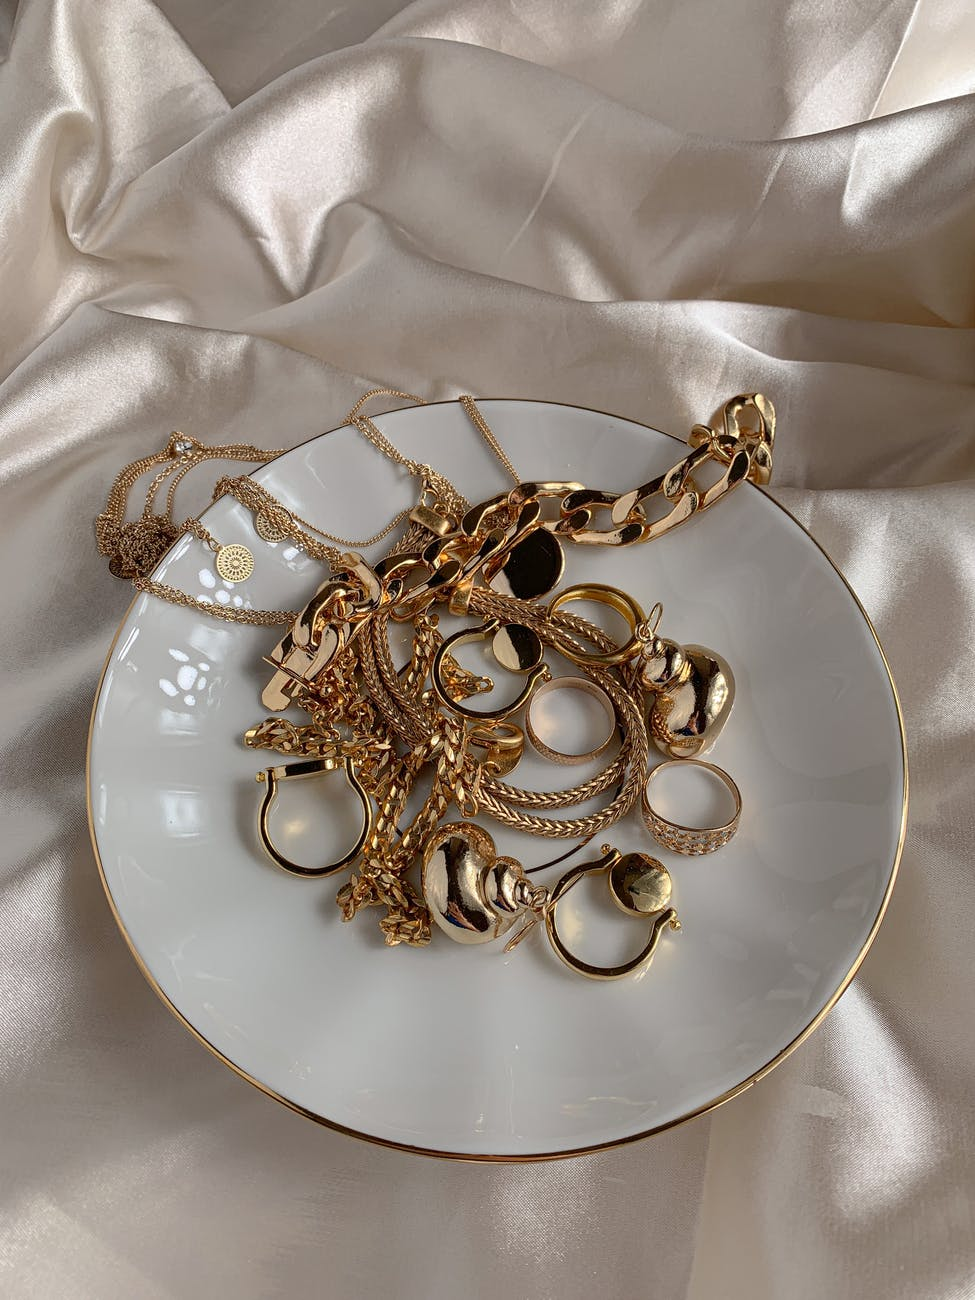 A small dish full of expensive jewellery